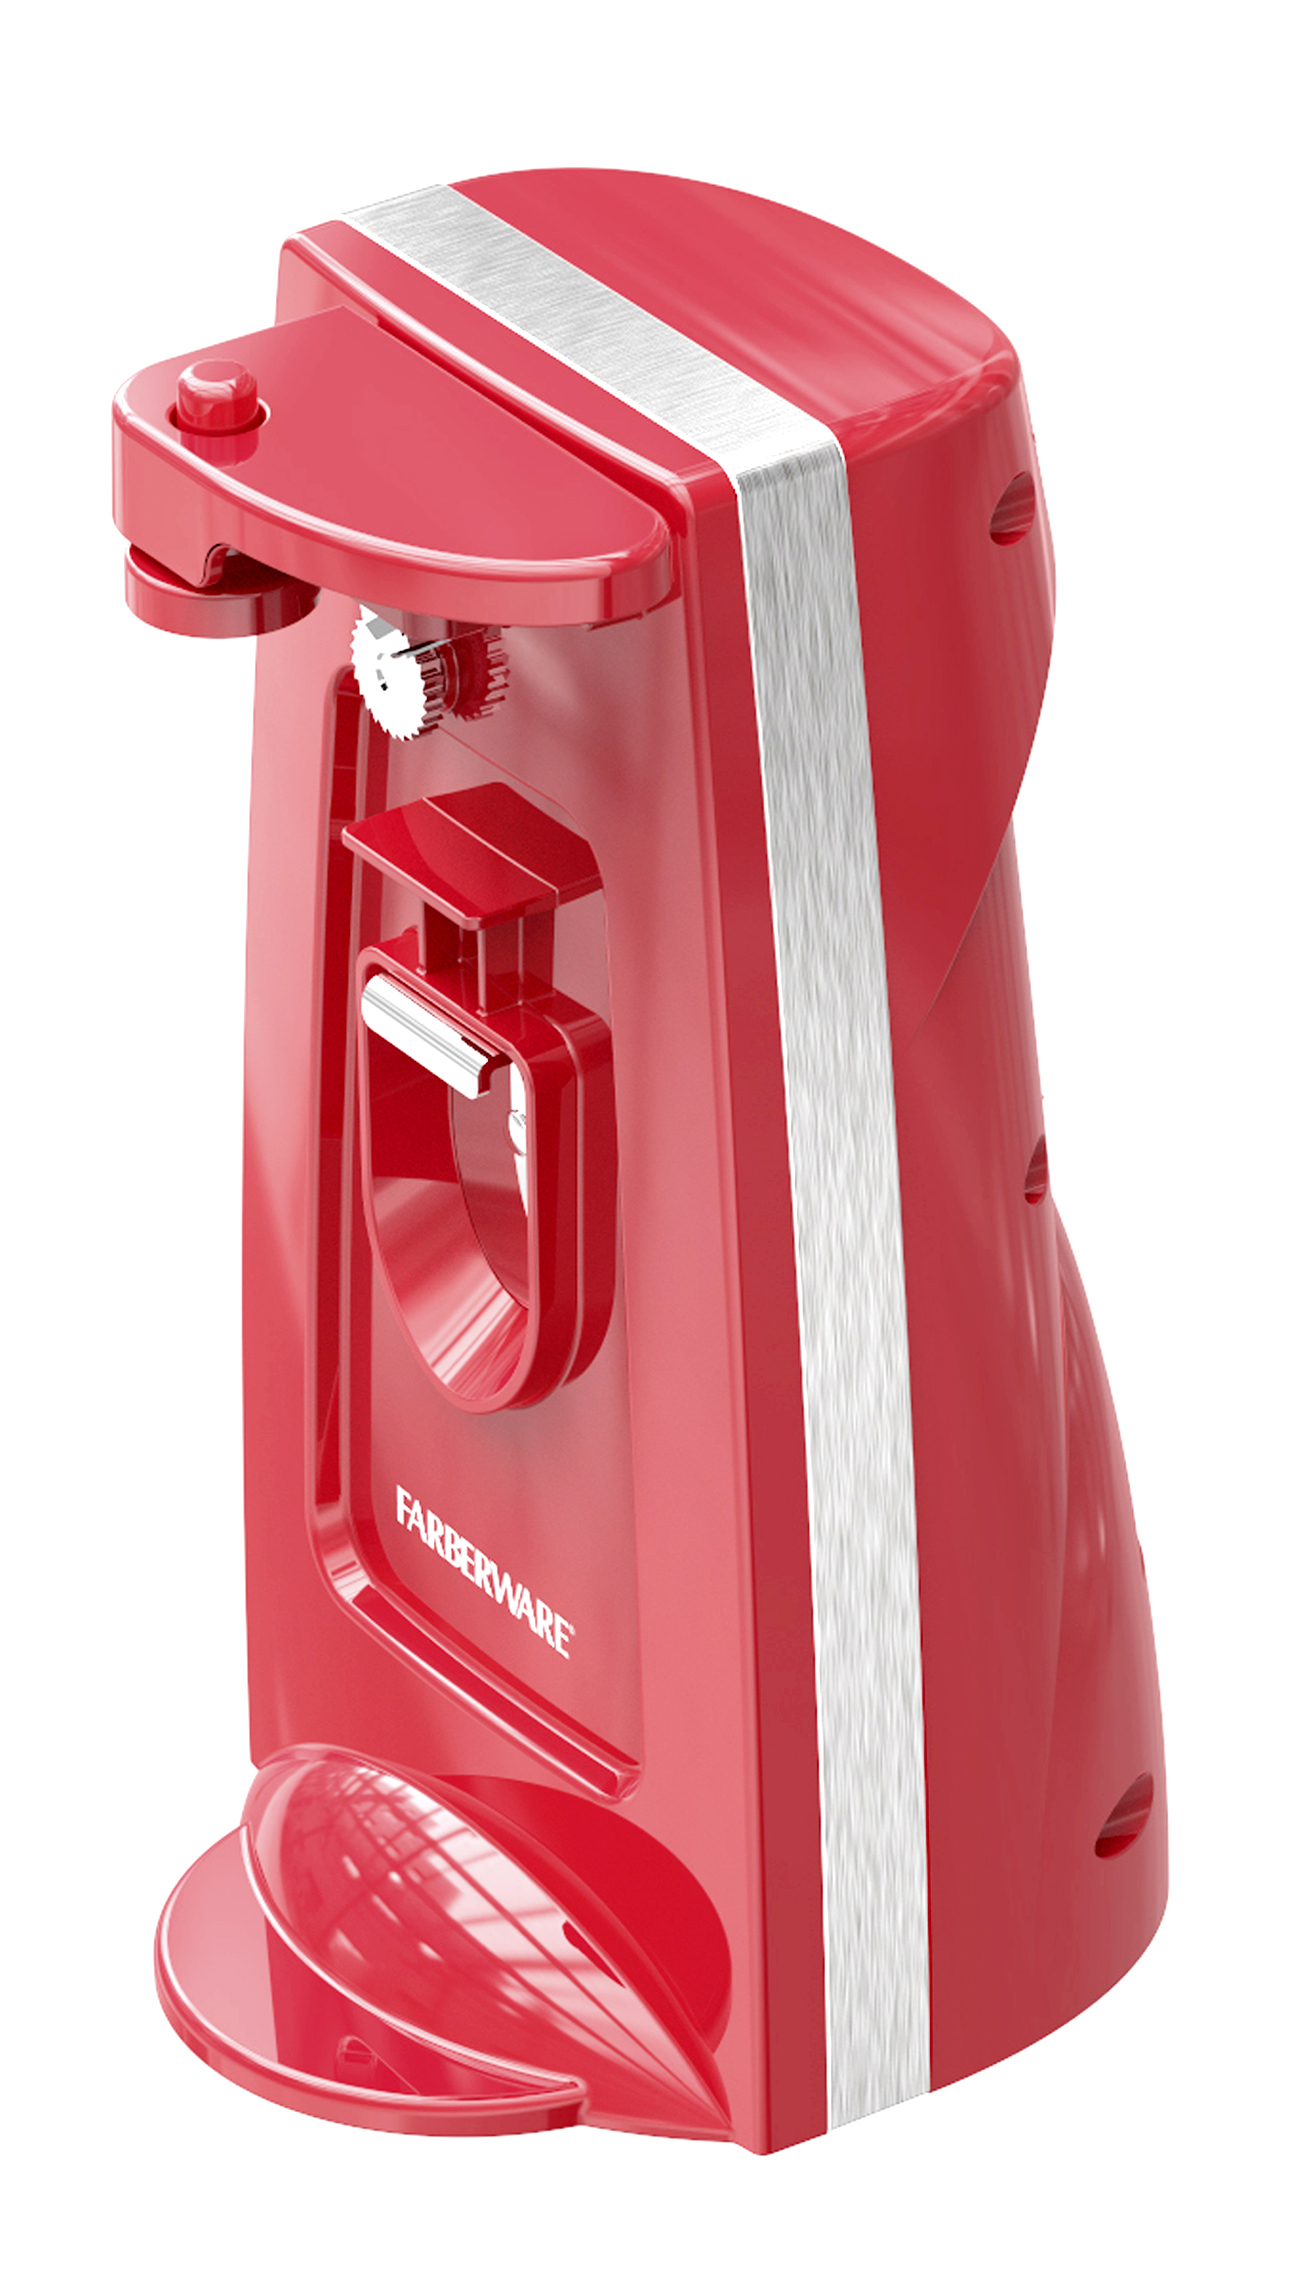 Farberware Can Opener Red